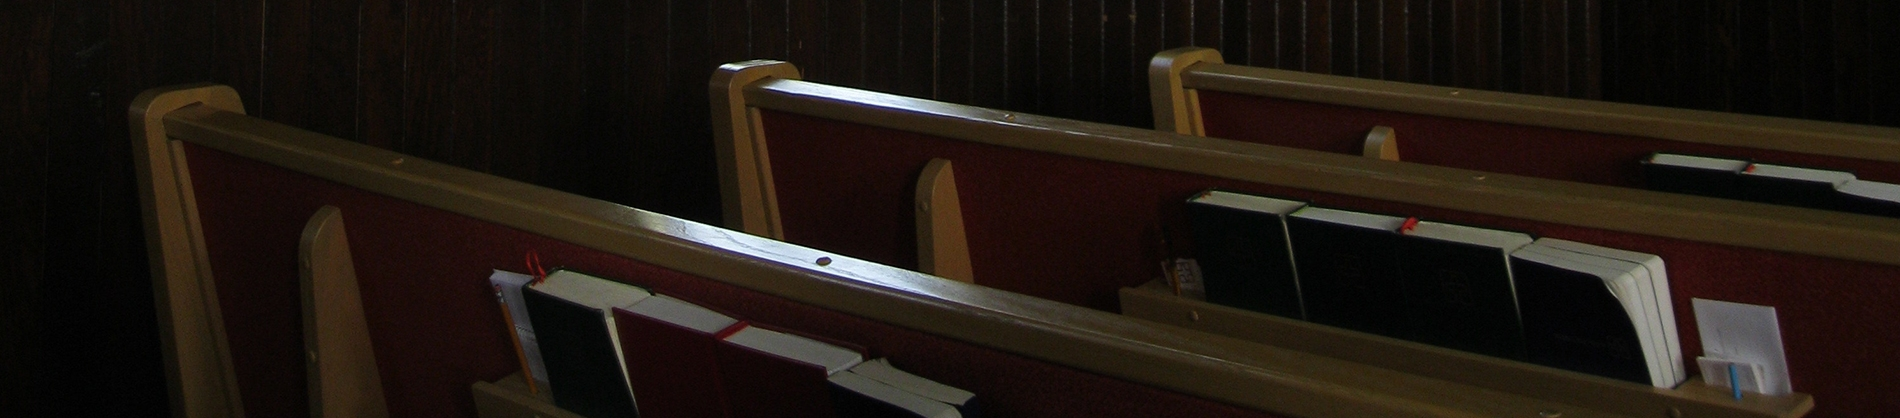 Church pews with bibles stacked in the shelf